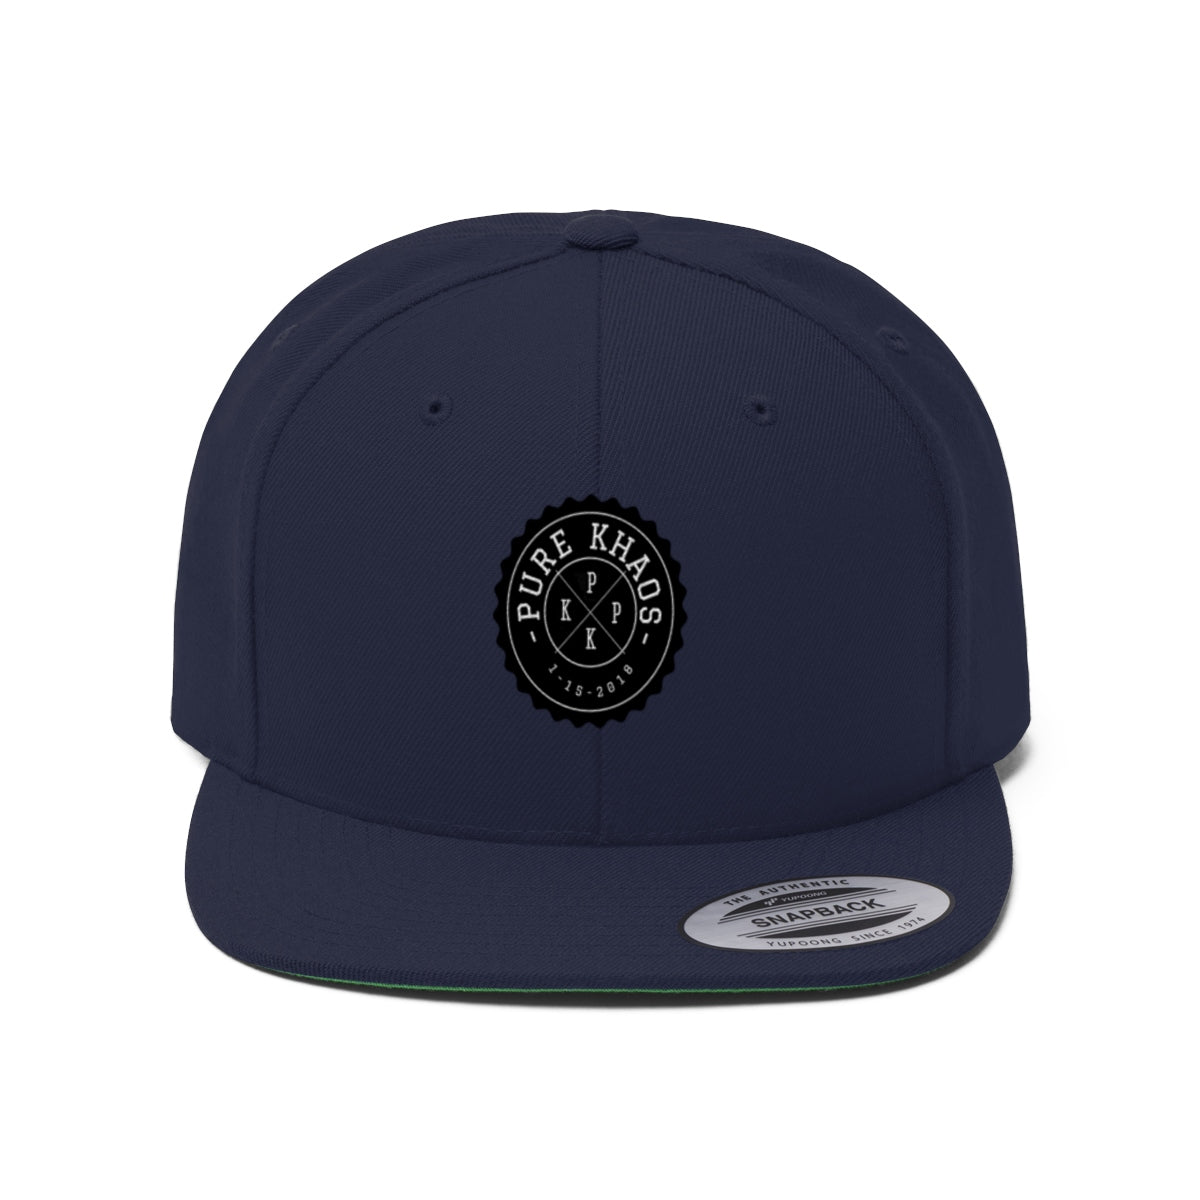 PK ESTABLISHED FLAT BILL HAT